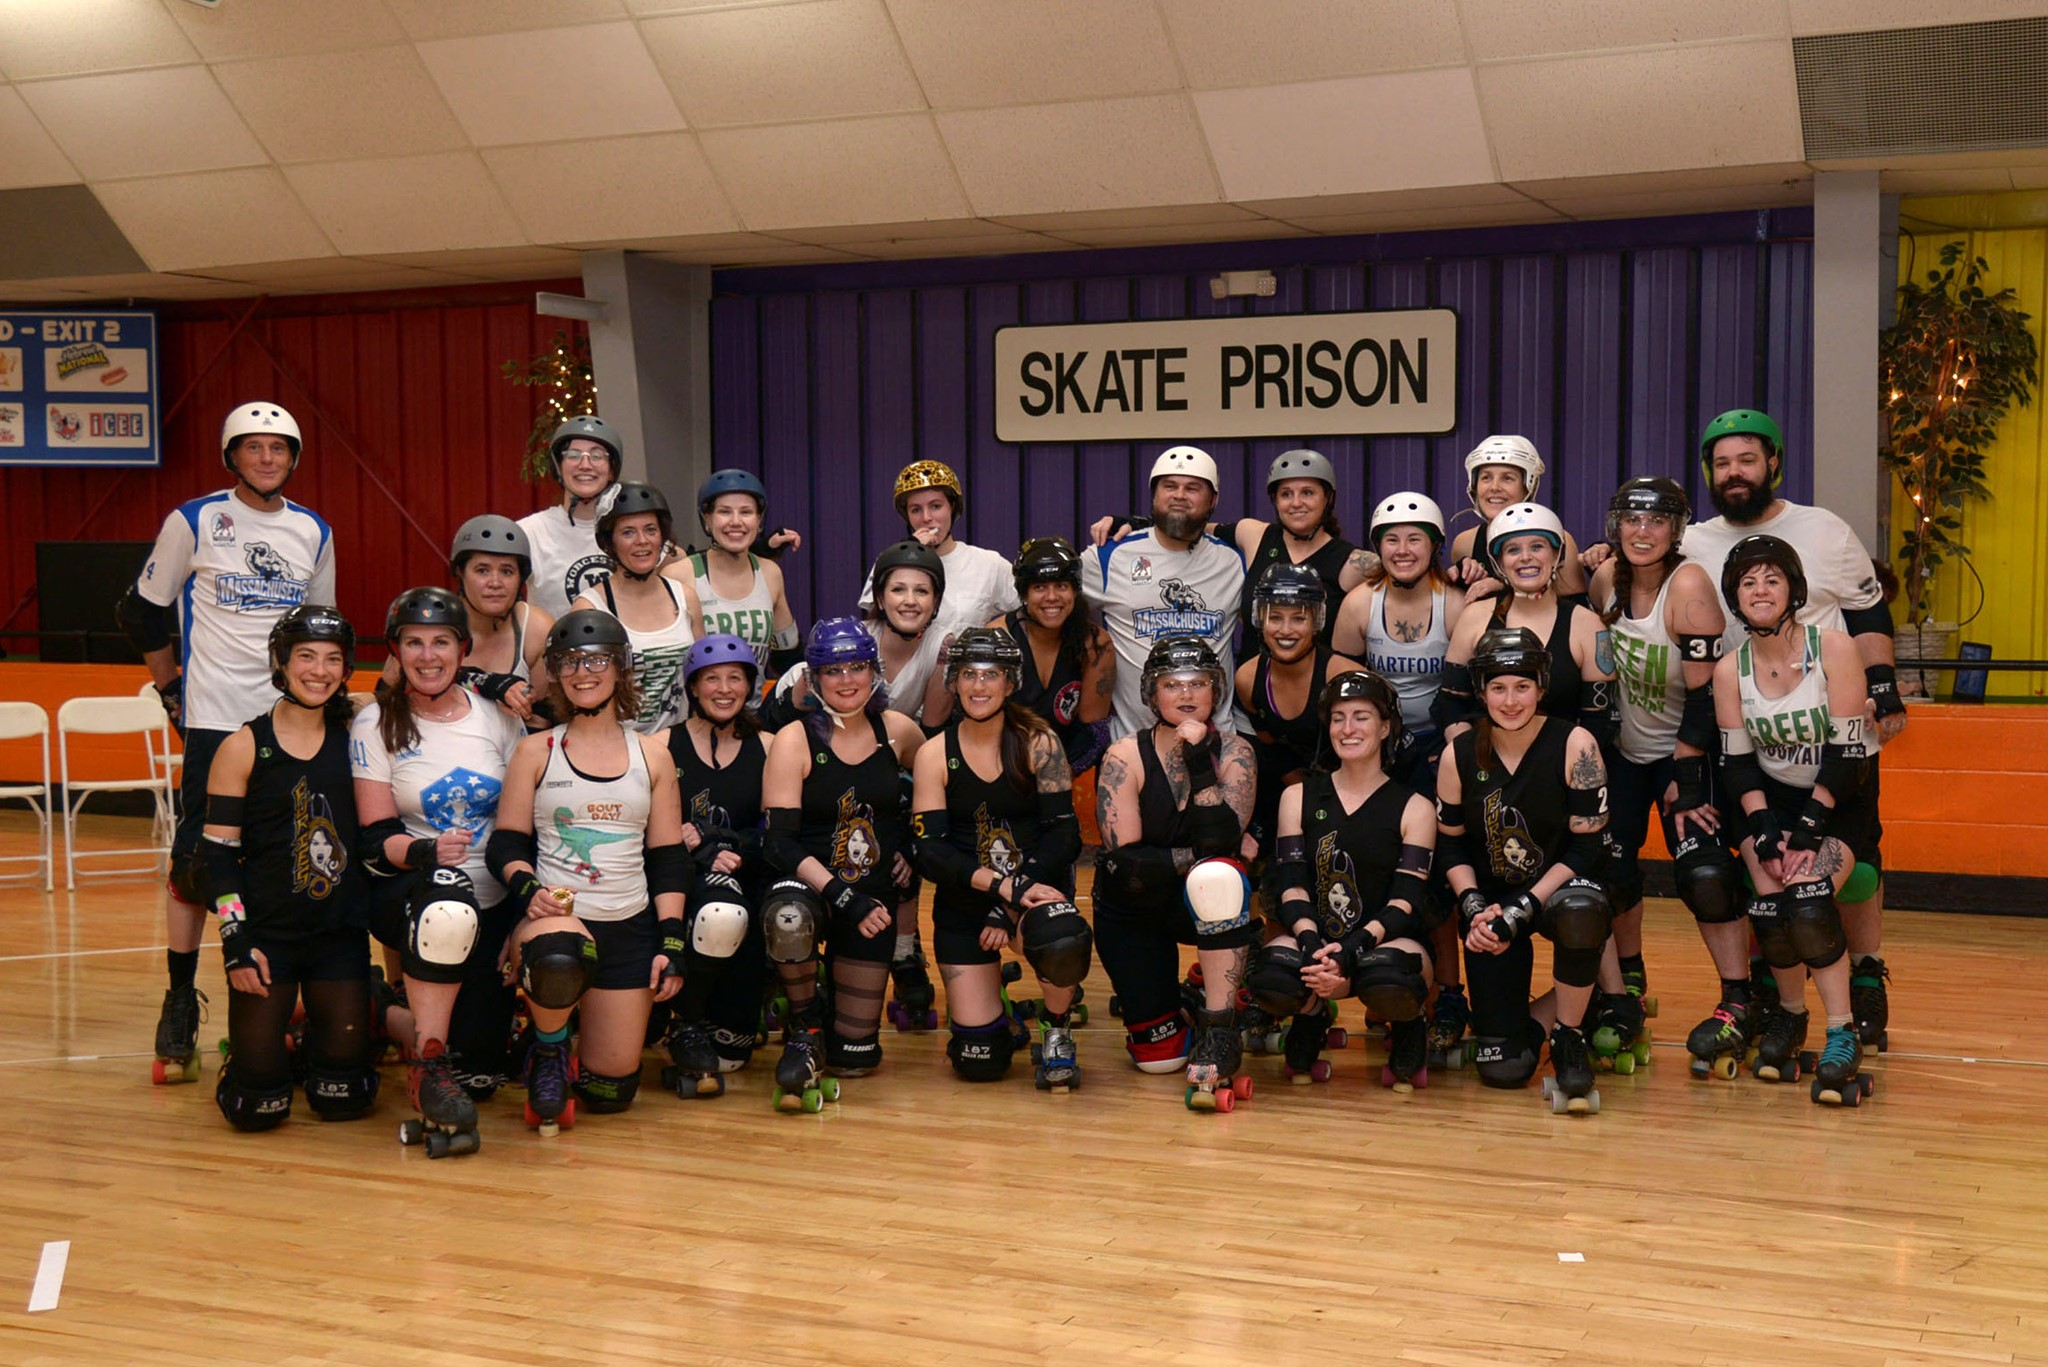 Look at these cuties! This is the Western Mass Furies and The World team posting together.